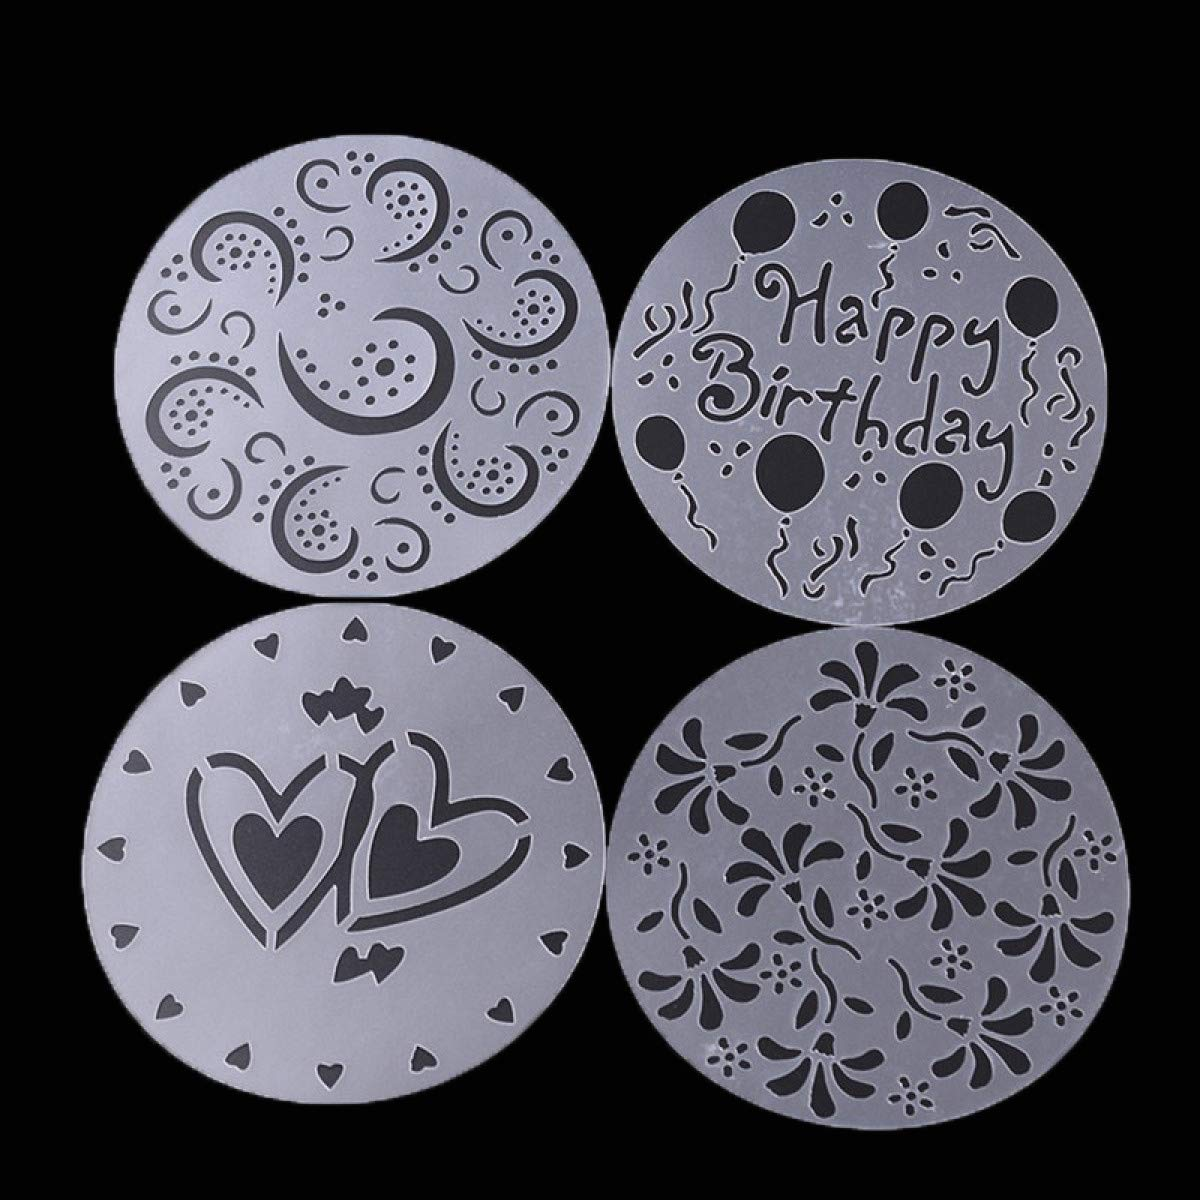 Amazon.com: Myhome99 cake mold Plastic Cake Stencils Flower Spray Stencils Birthday Cake Mold Decorating Bakery Tools DIY Mould Fondant Template: Kitchen & ...